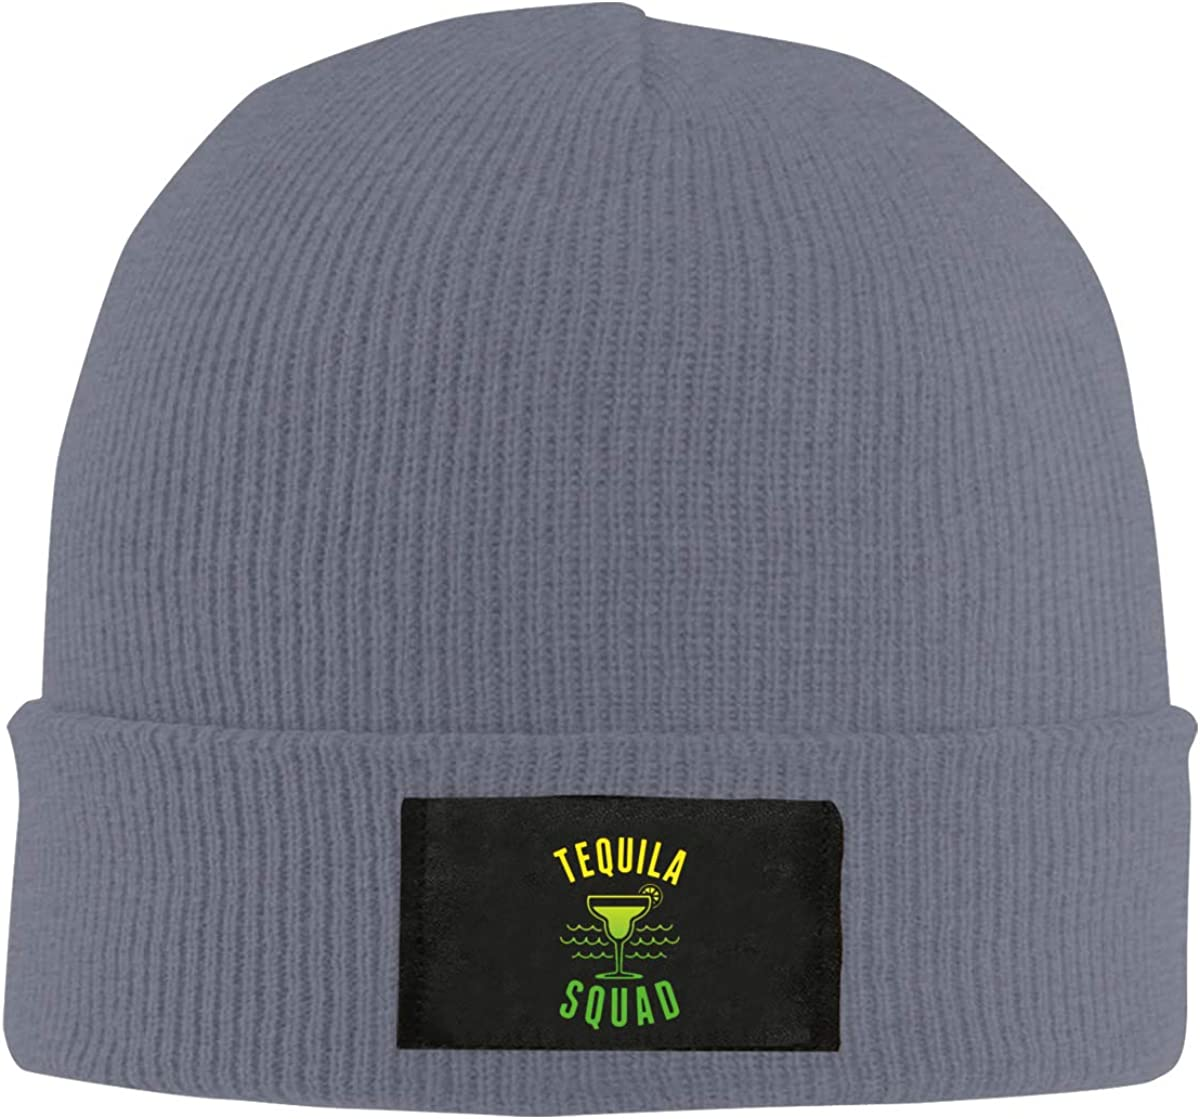 Unisex Stylish Slouch Beanie Hats Black Tequila Squad Top Level Beanie Men Women